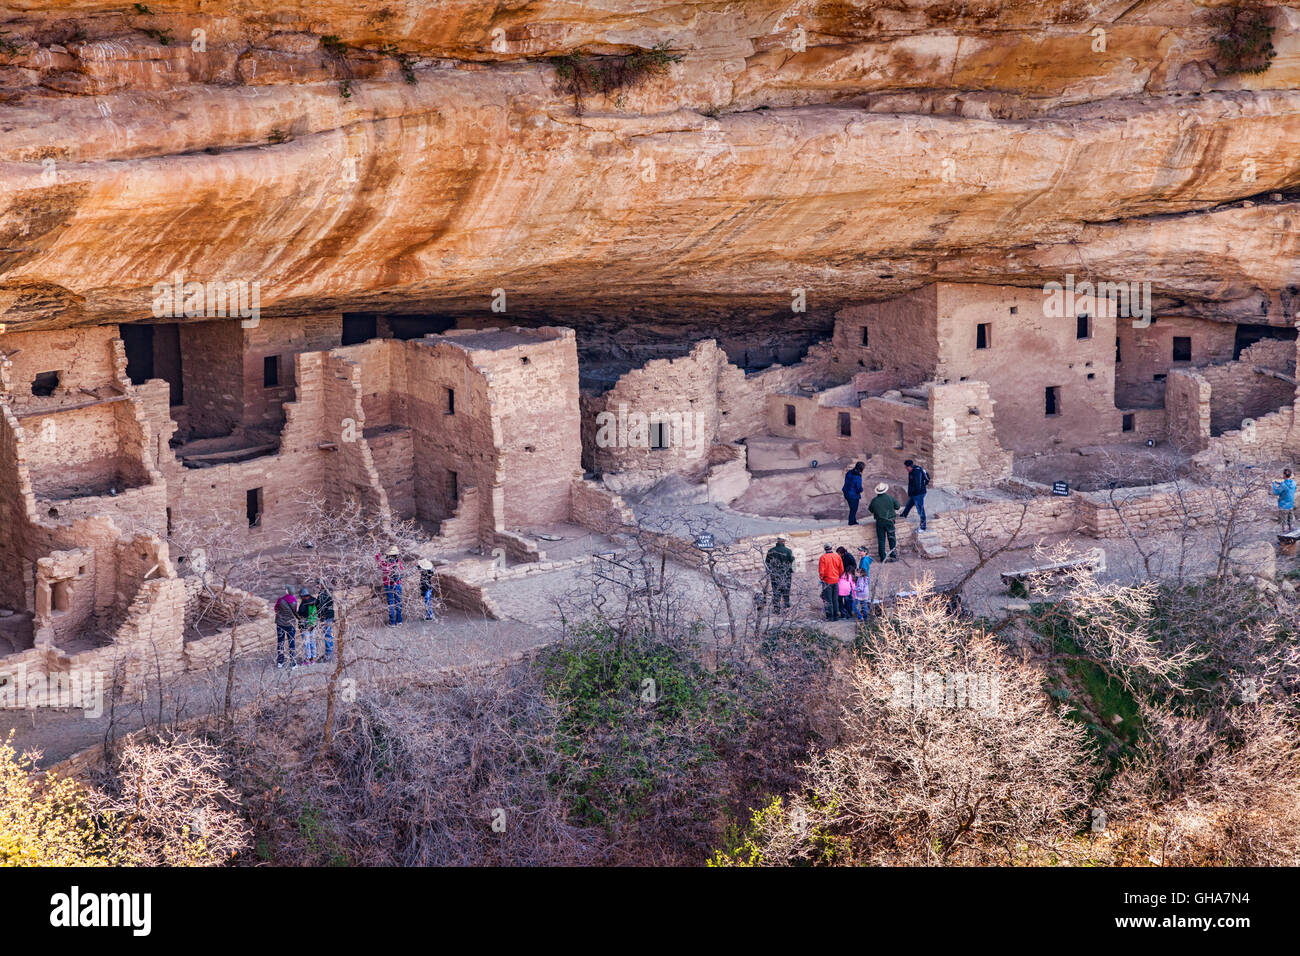 Visitors at Spruce House a cliff dwelling in Mesa Verde National Park, Colorado, USA - Stock Image